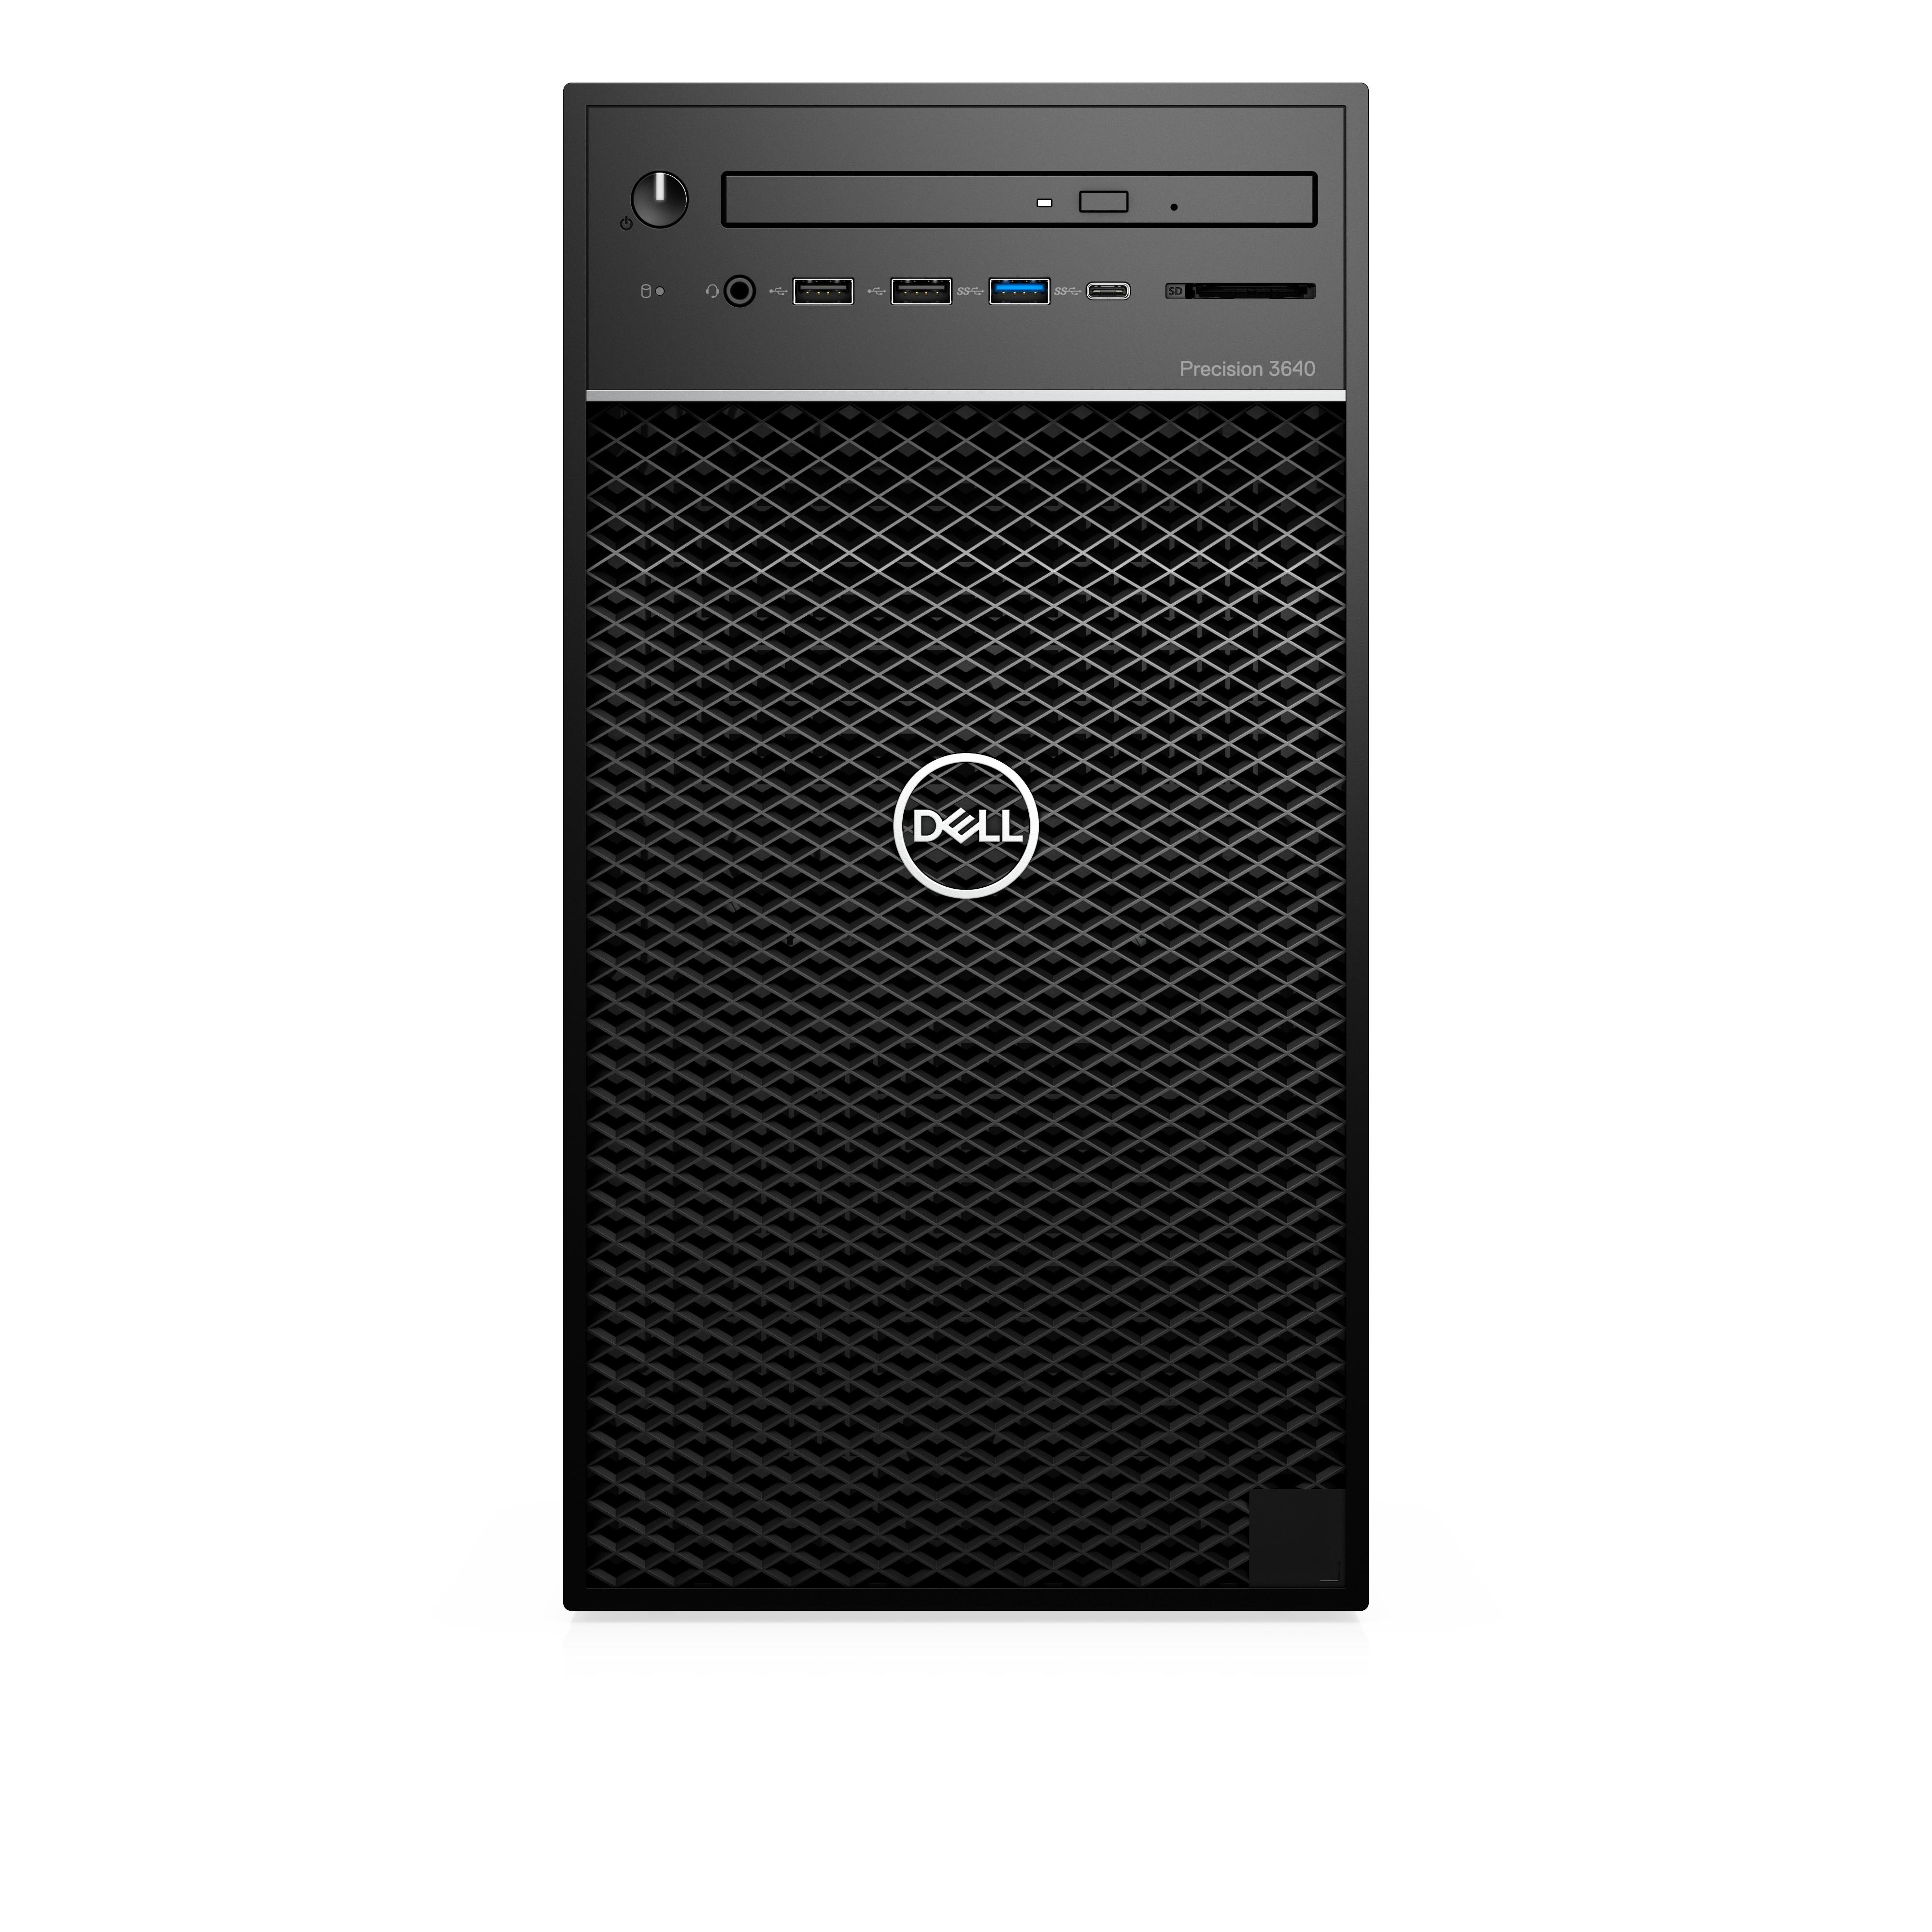 Dell Precision 3640 i7 8GB 256GB DVD-RW Win10Pro